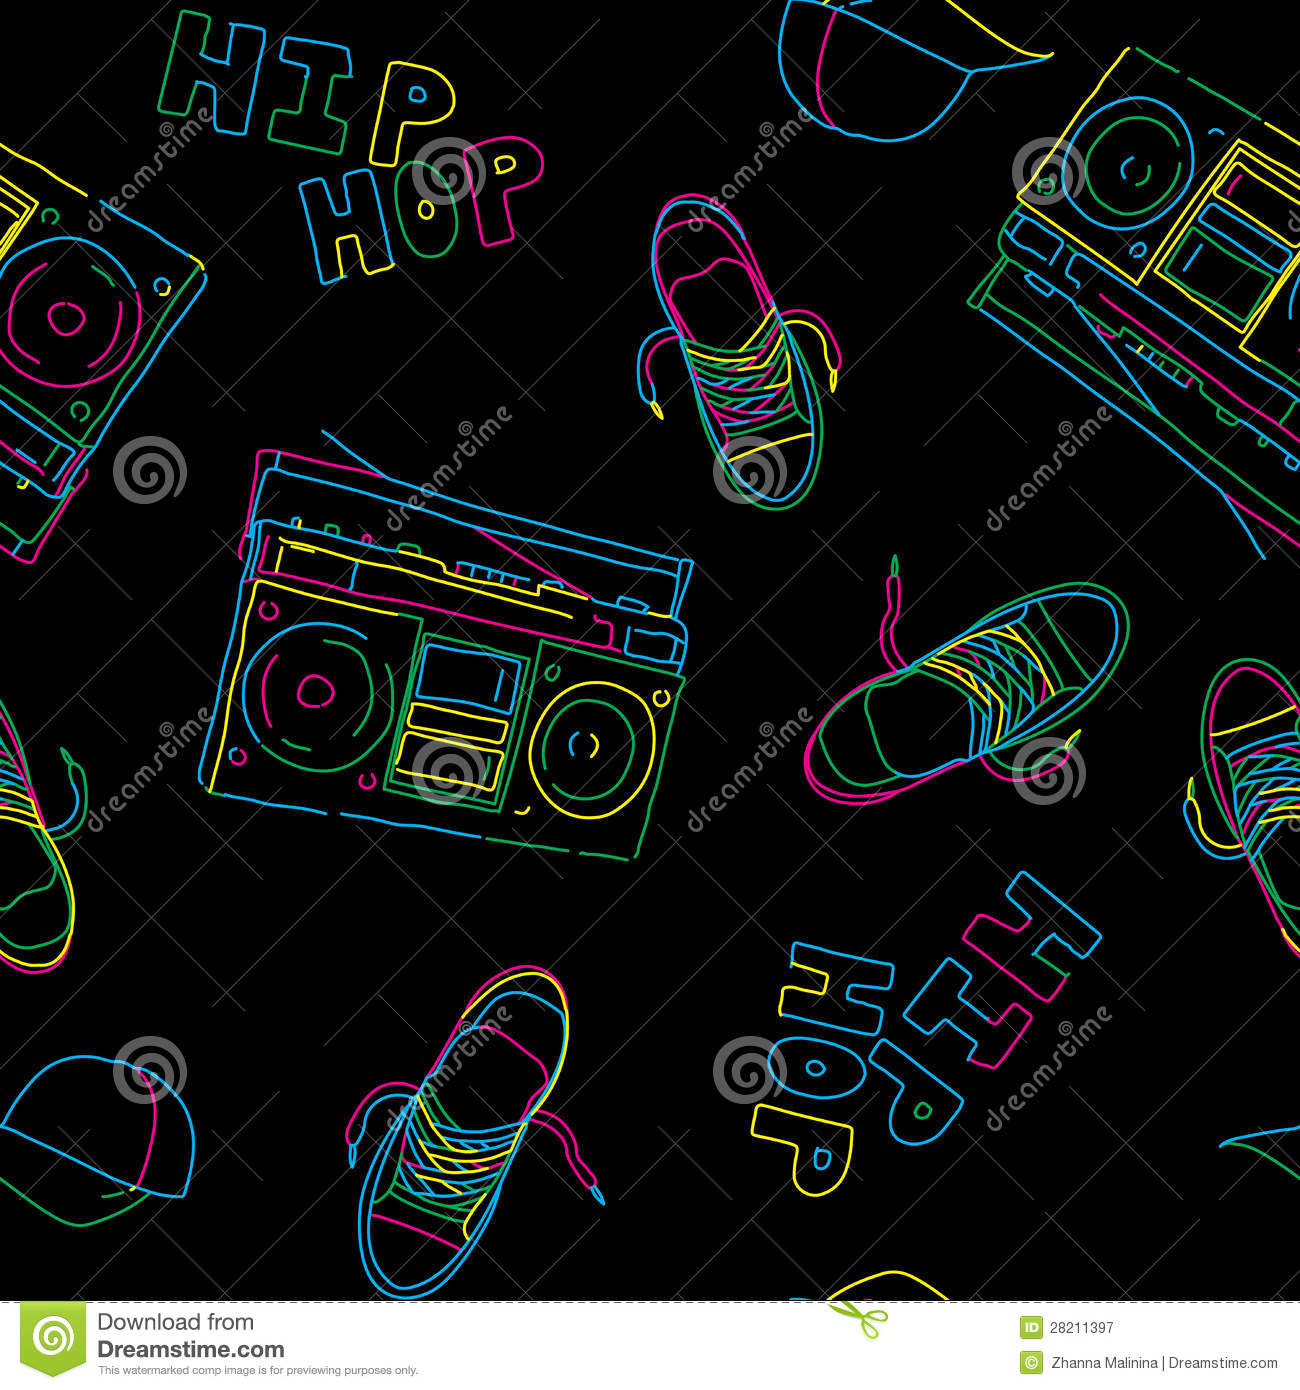 Image Result For Royalty Free Hip Hop Music Download